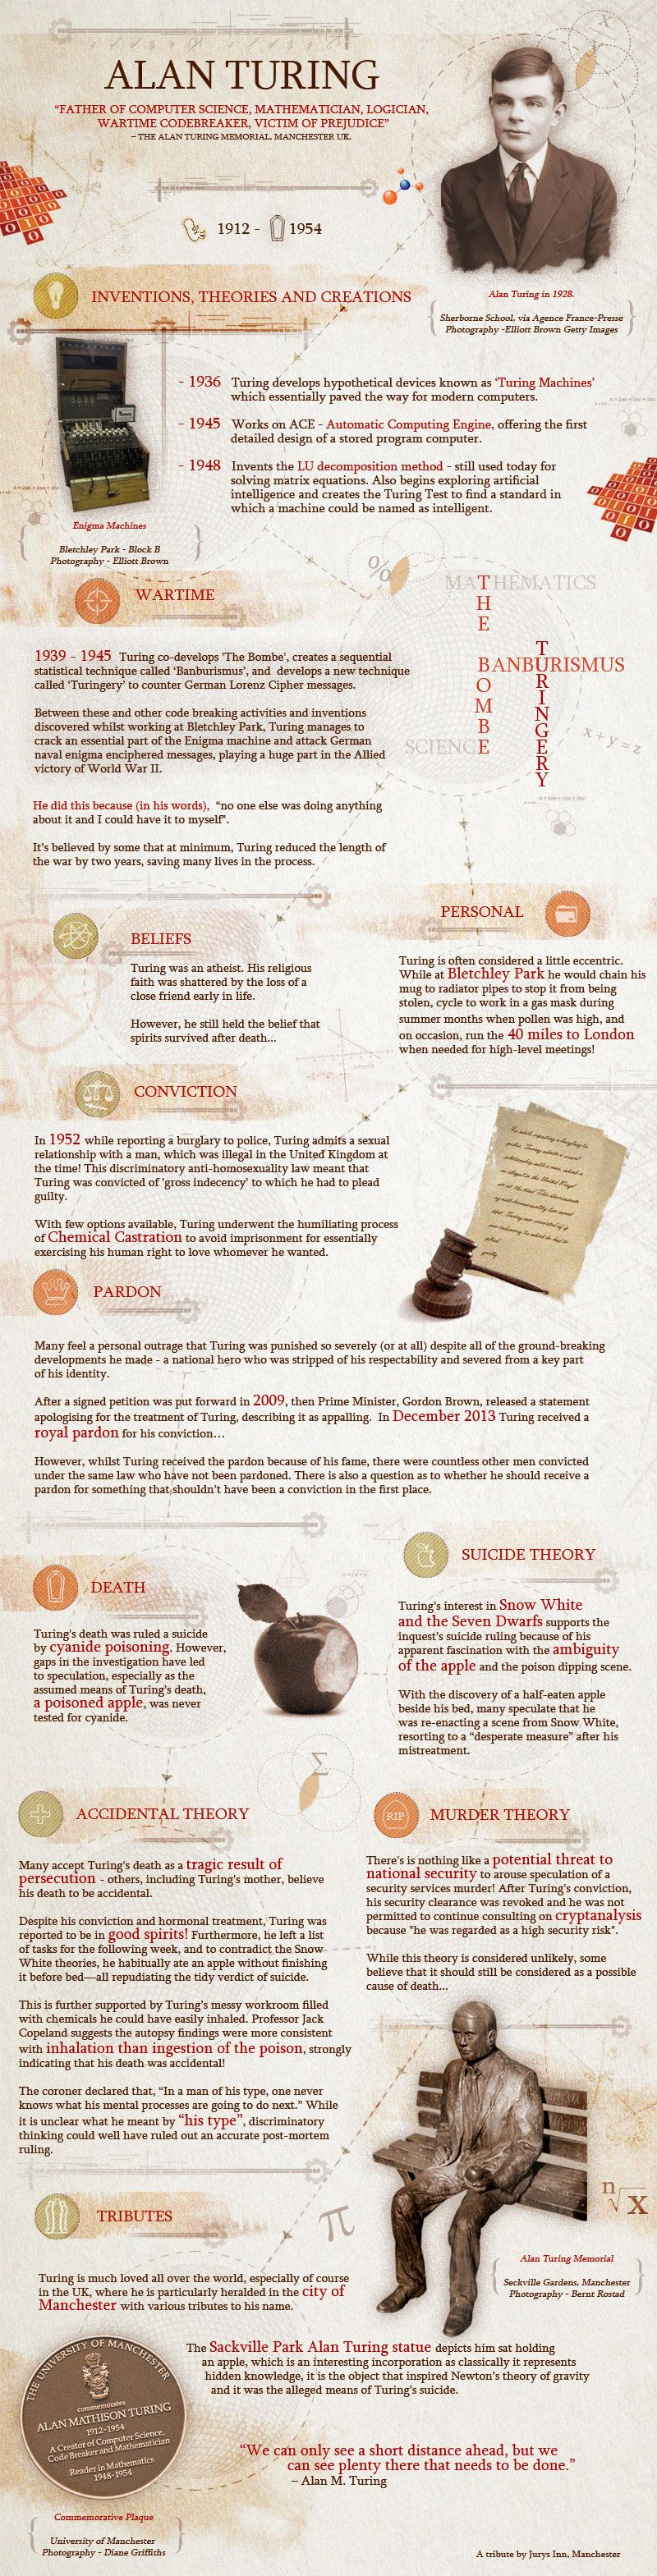 Alan Turing Infographic courtesy of Jurys Inn Hotels